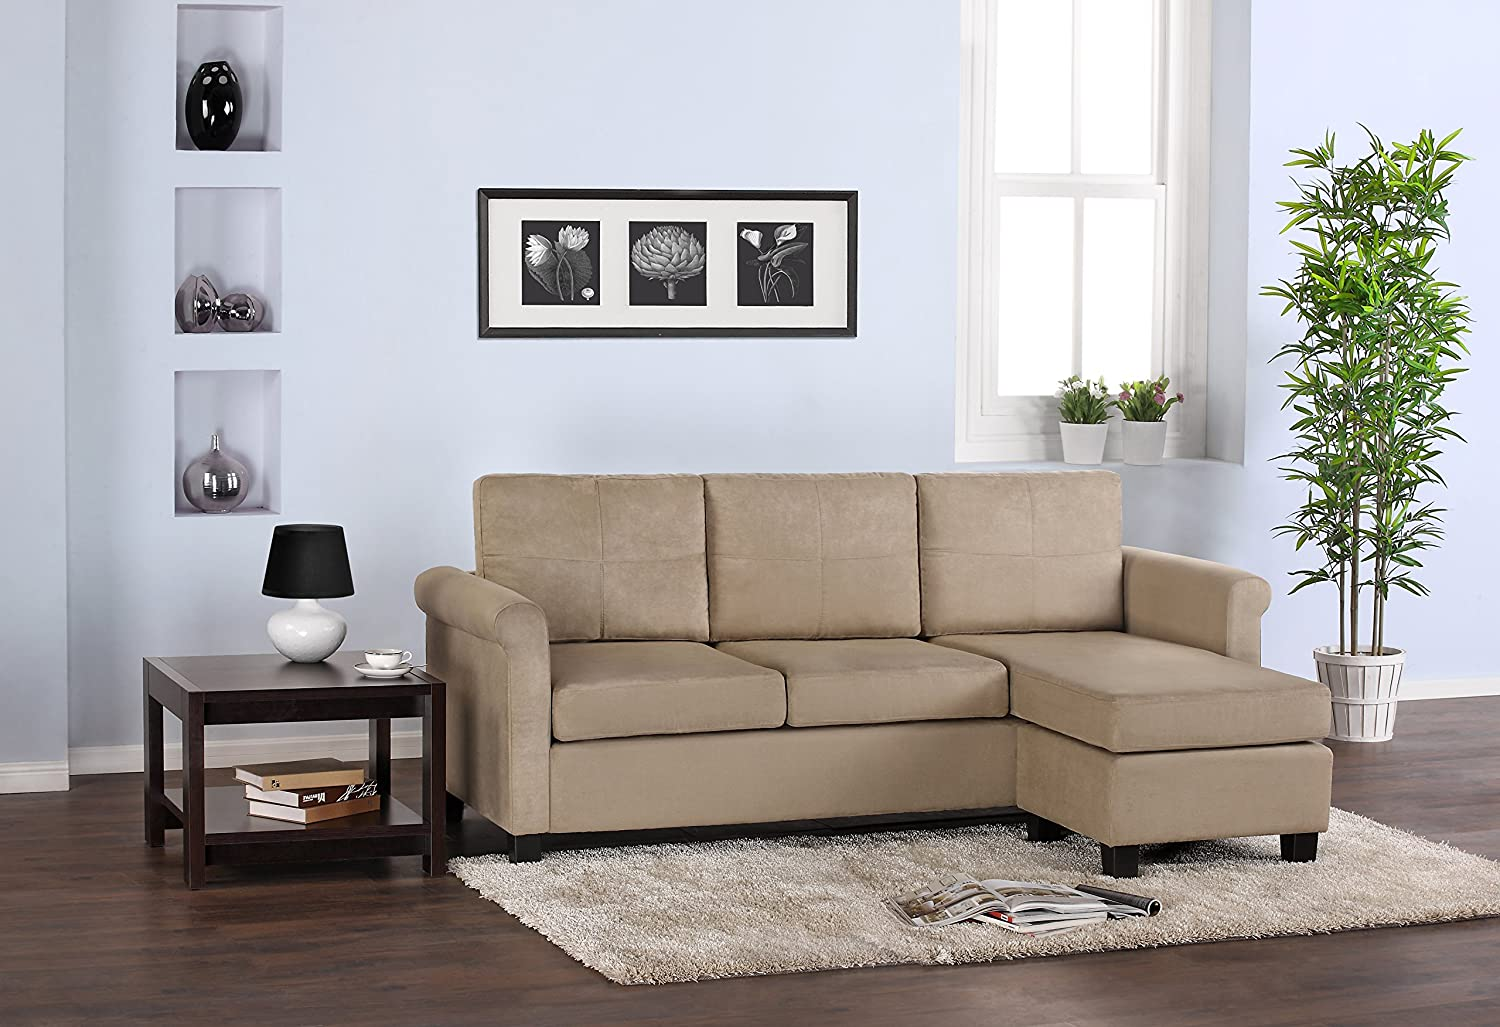 Captivating Amazon.com: Dorel Asia Versatile Small Spaces Sectional Sofa .